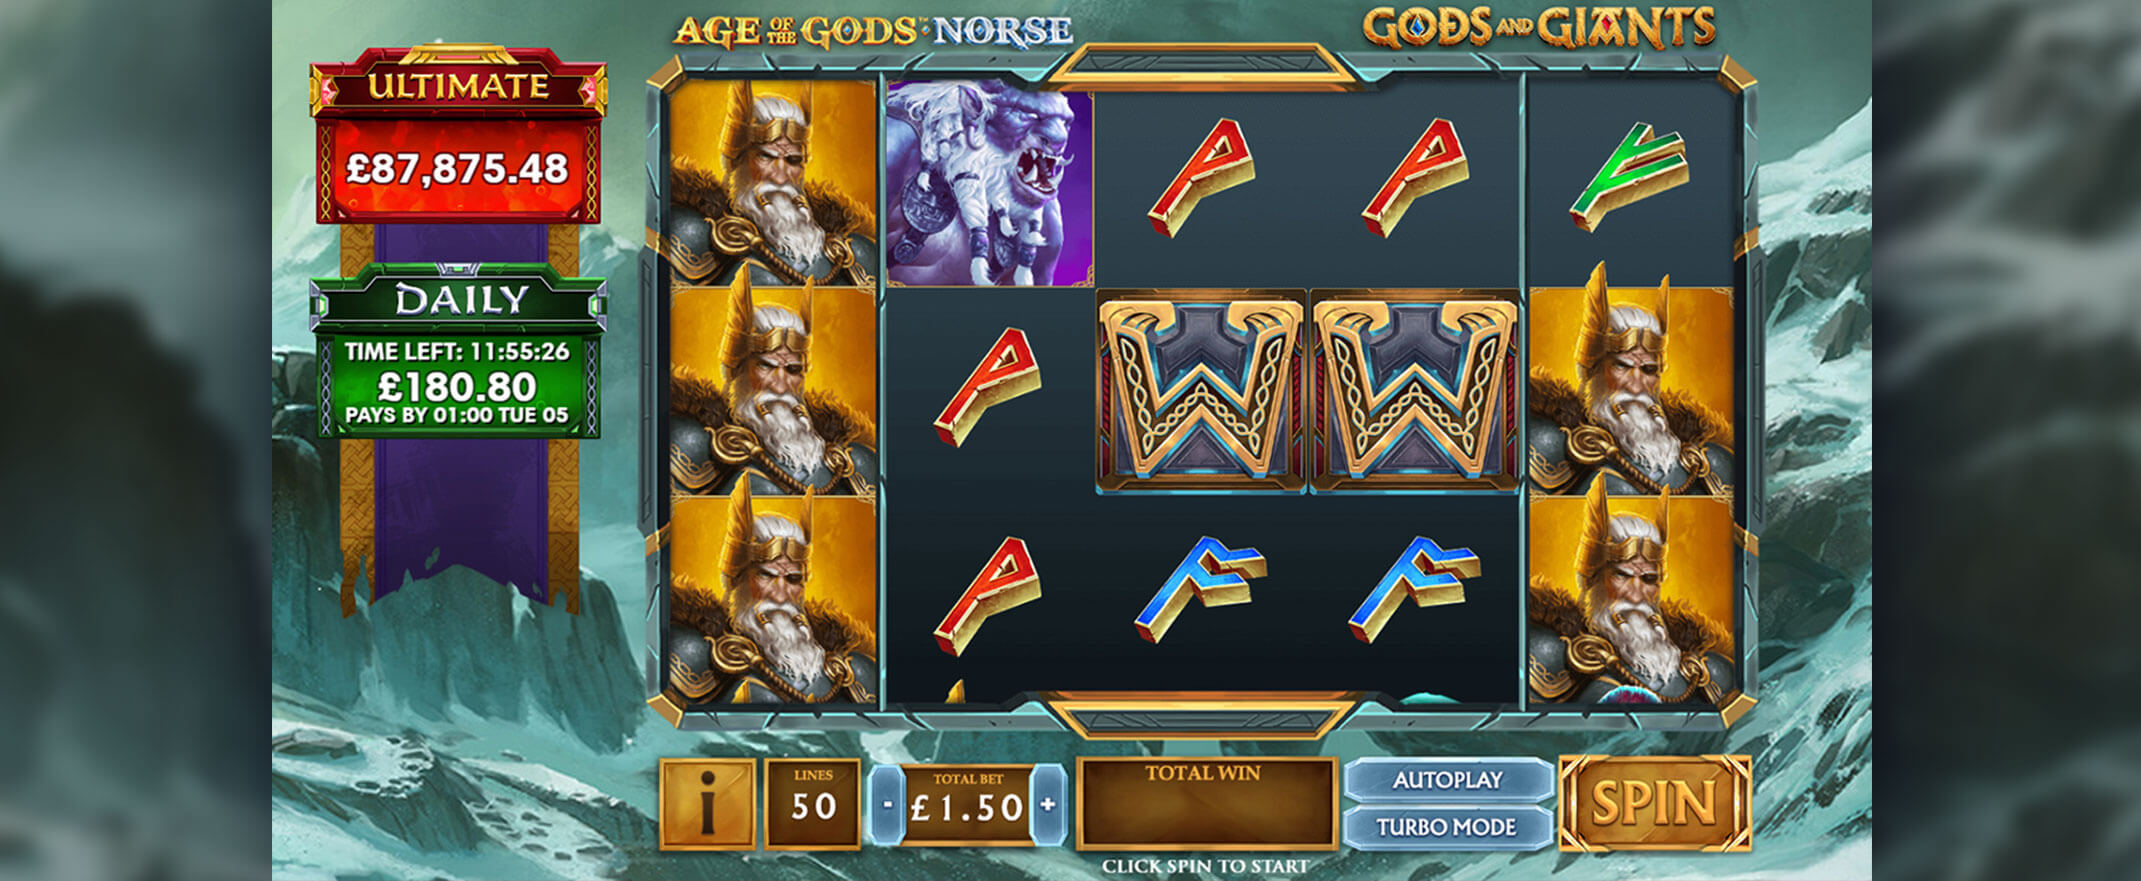 gods-and-giants-slot-gameplay